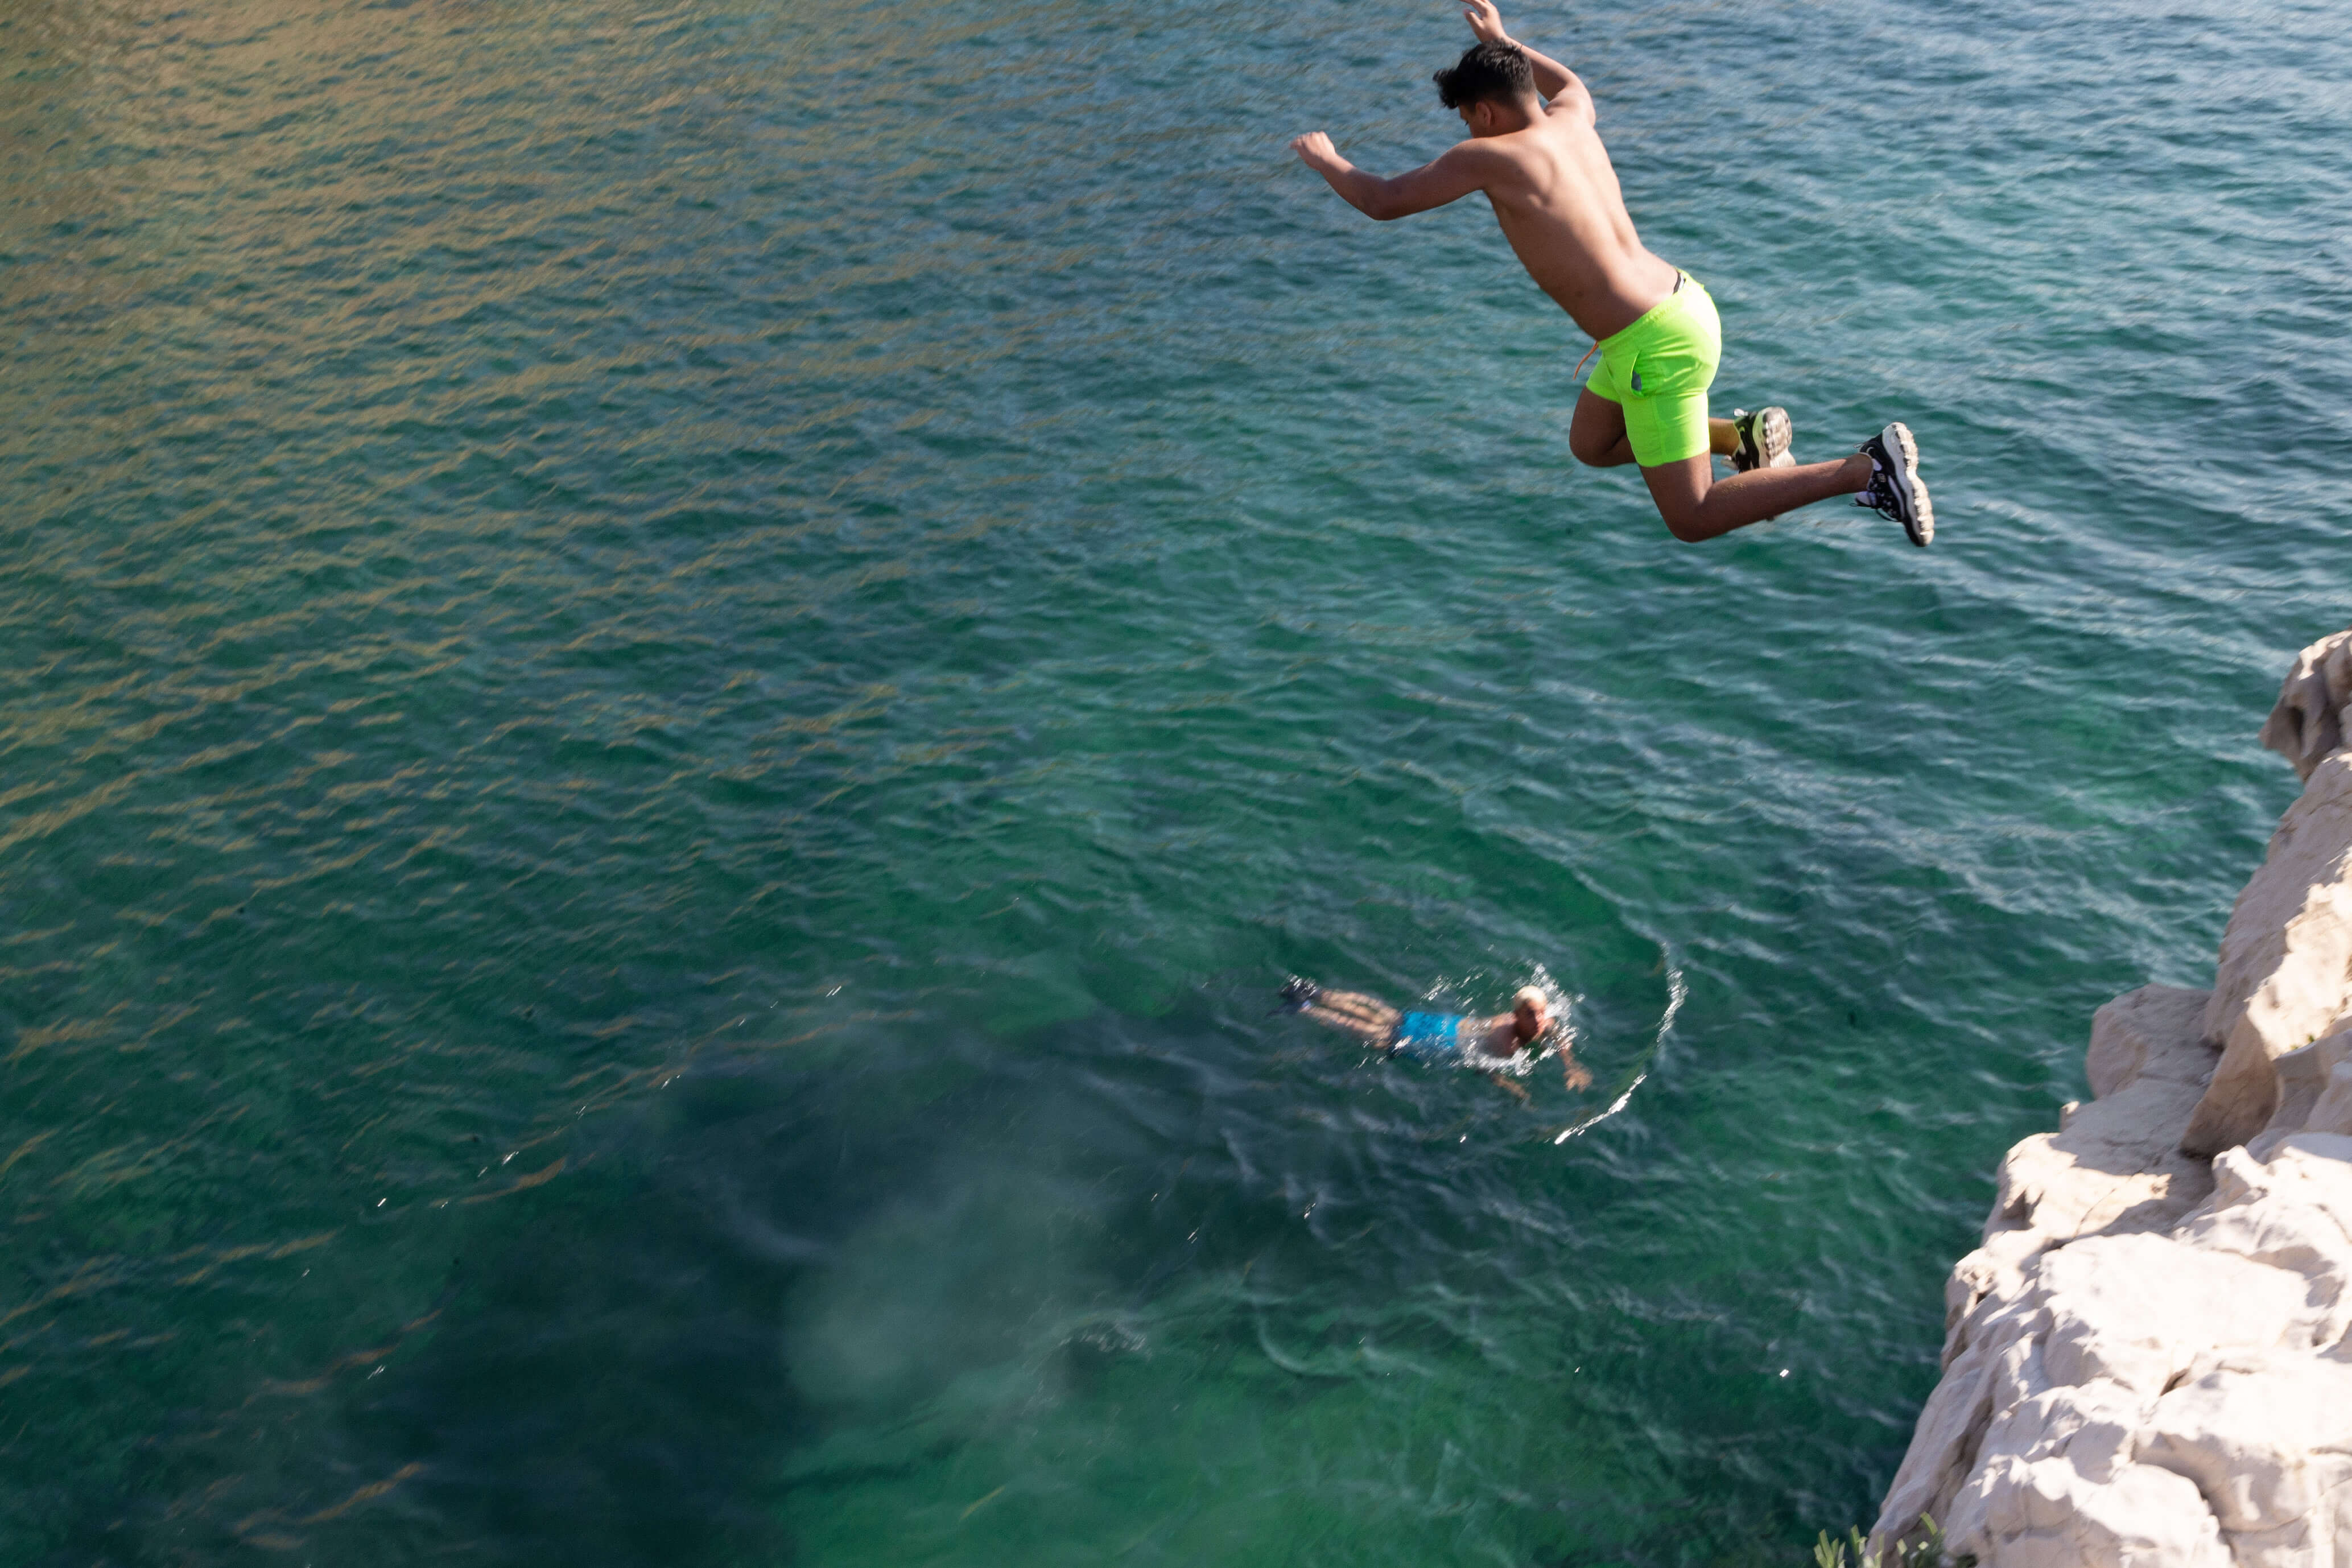 17_doing_bird_magazine_project_calanque_saména_corniche_kennedy_jumping_photography_giovanni_di_stefano_paris_.jpg